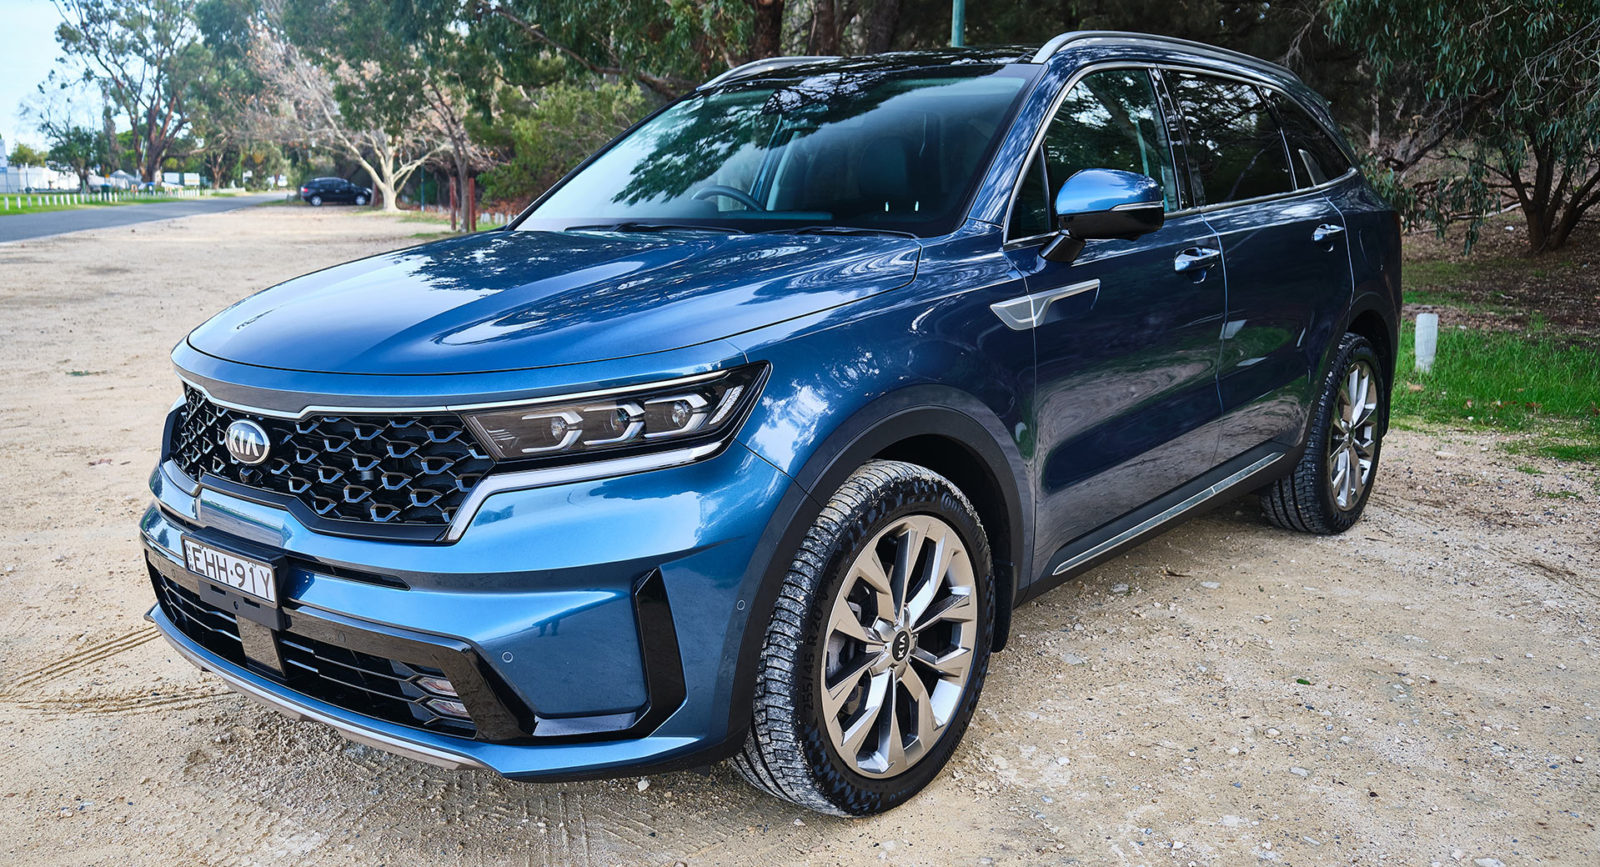 driven:-2021-kia-sorento-gt-line-diesel-is-very-hard-to-fault